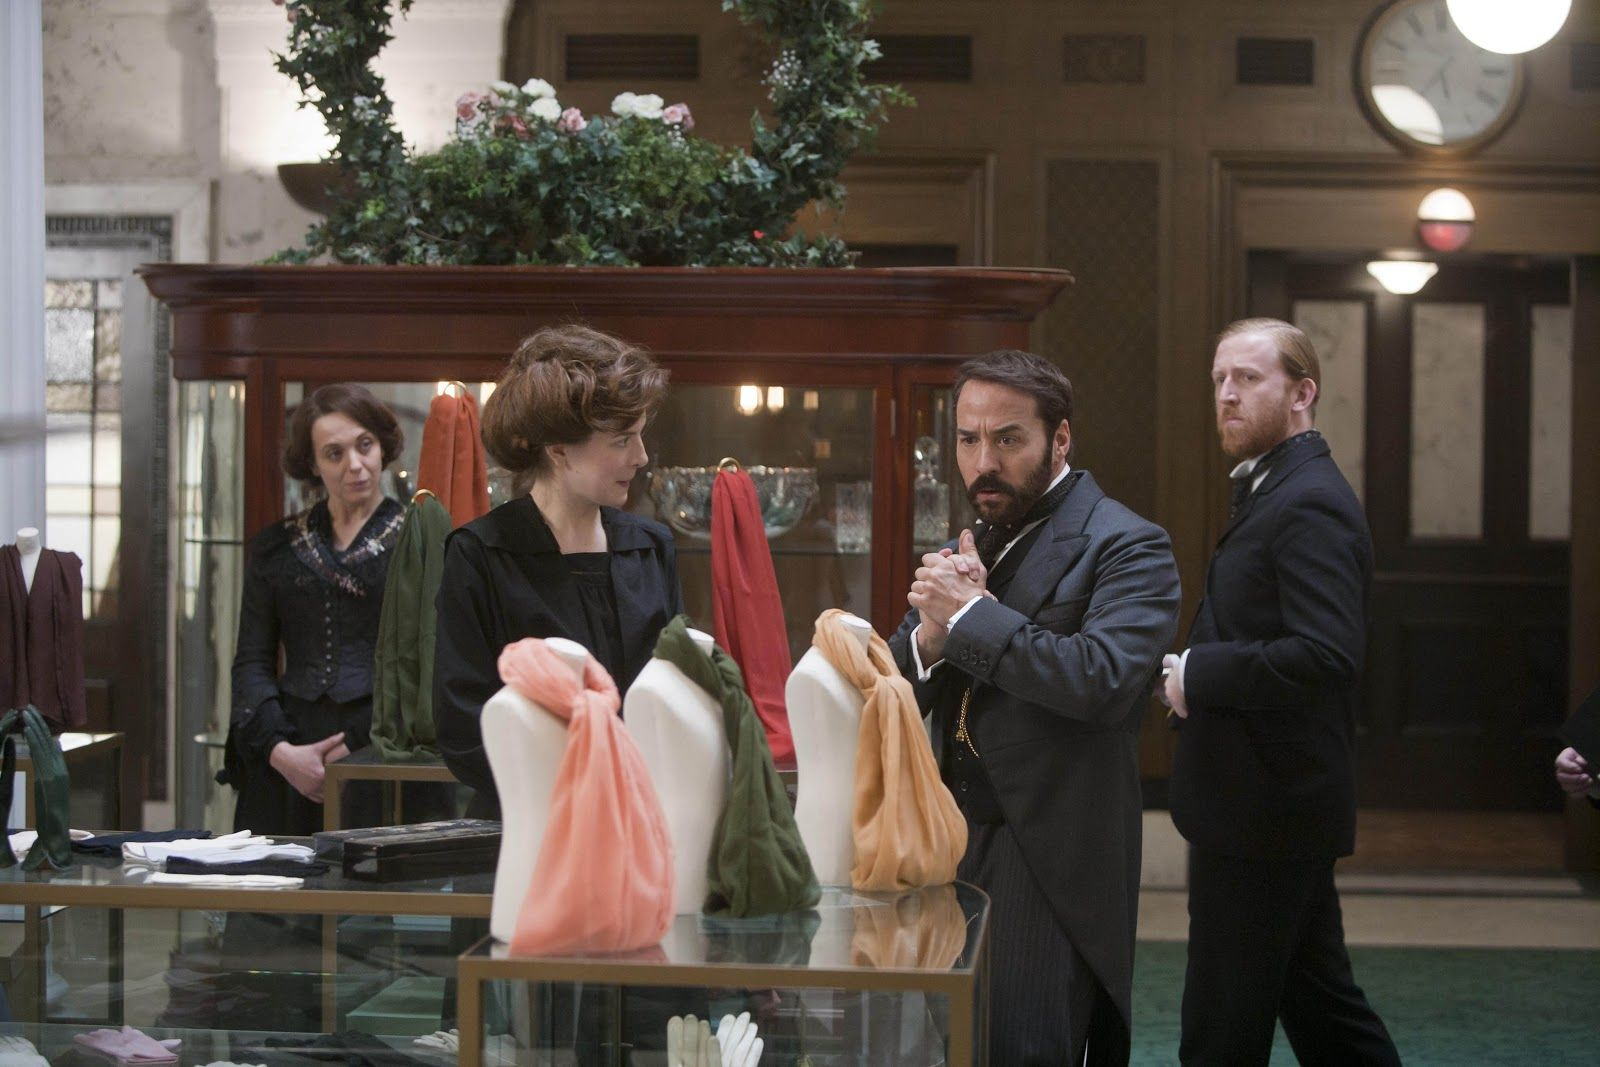 Mr Selfridge Mr selfridge, Selfridge, Mister